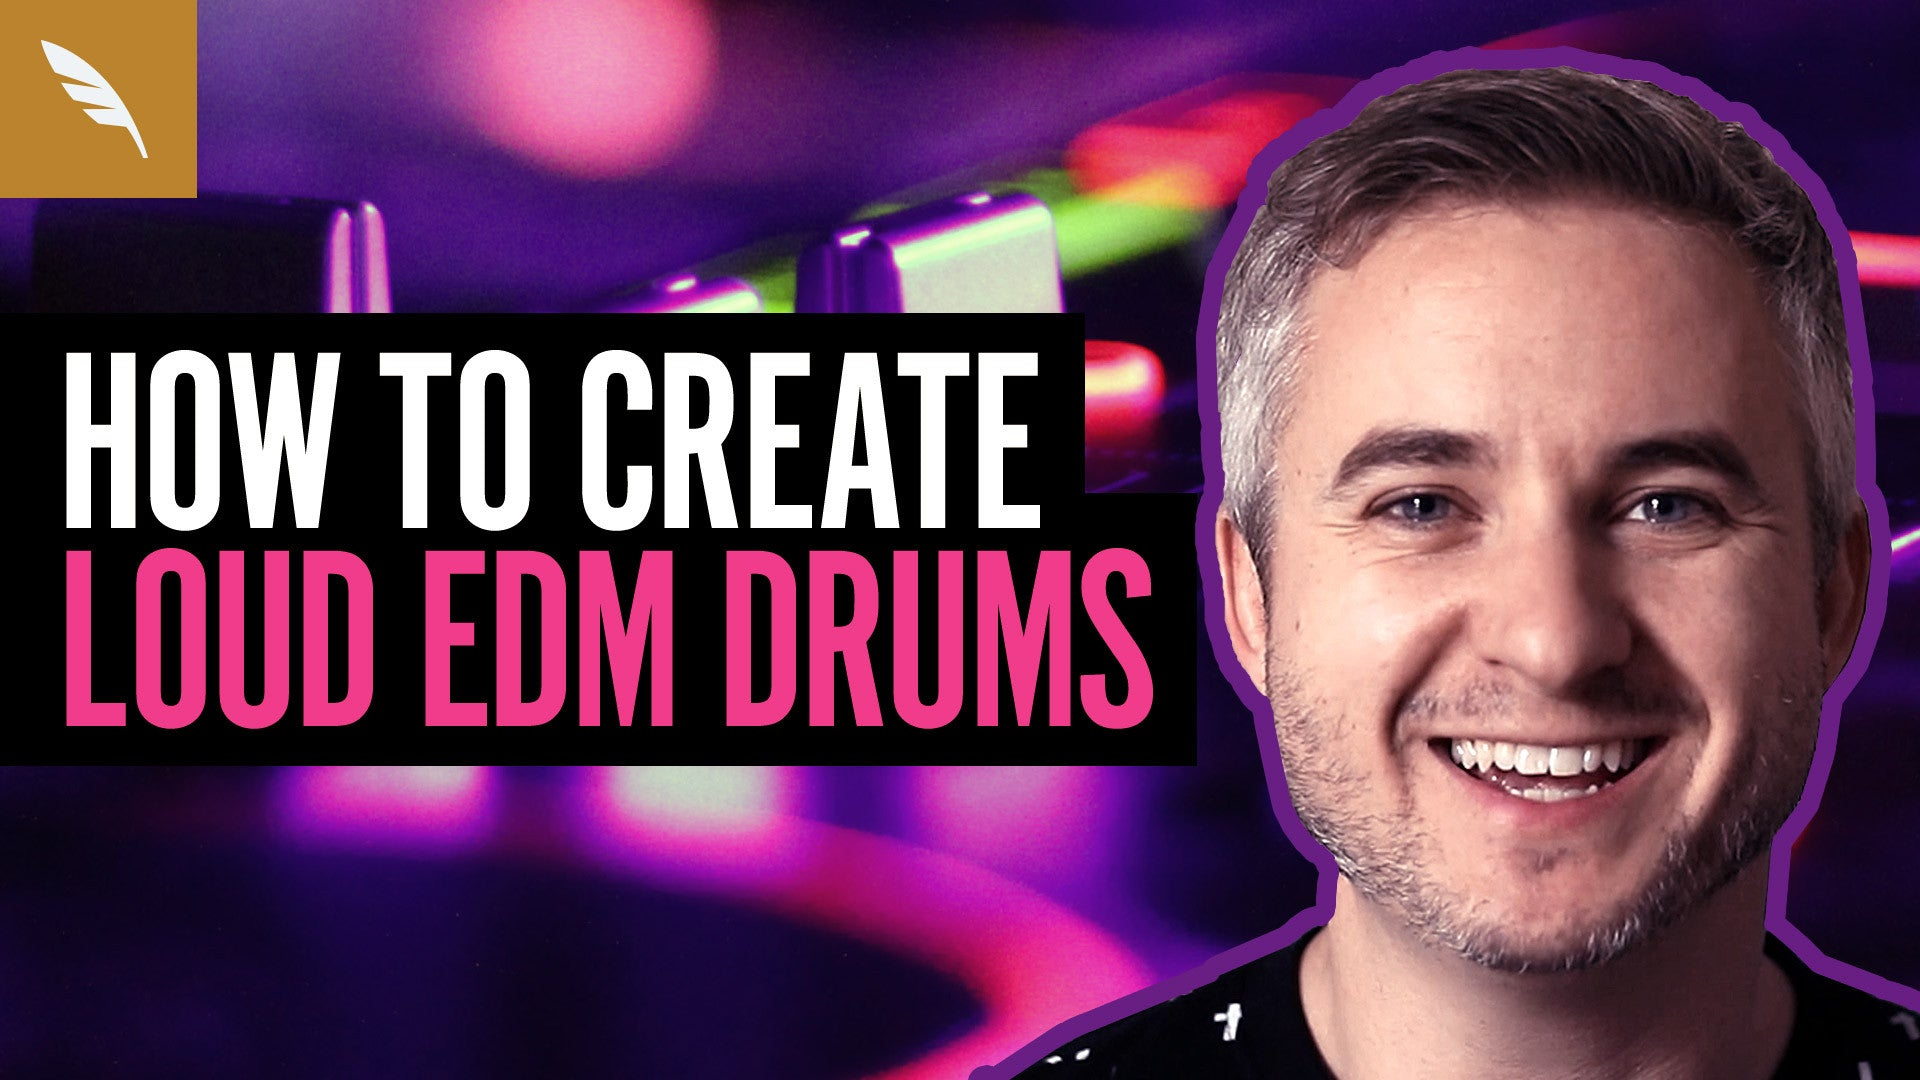 How To Create LOUD EDM Drums